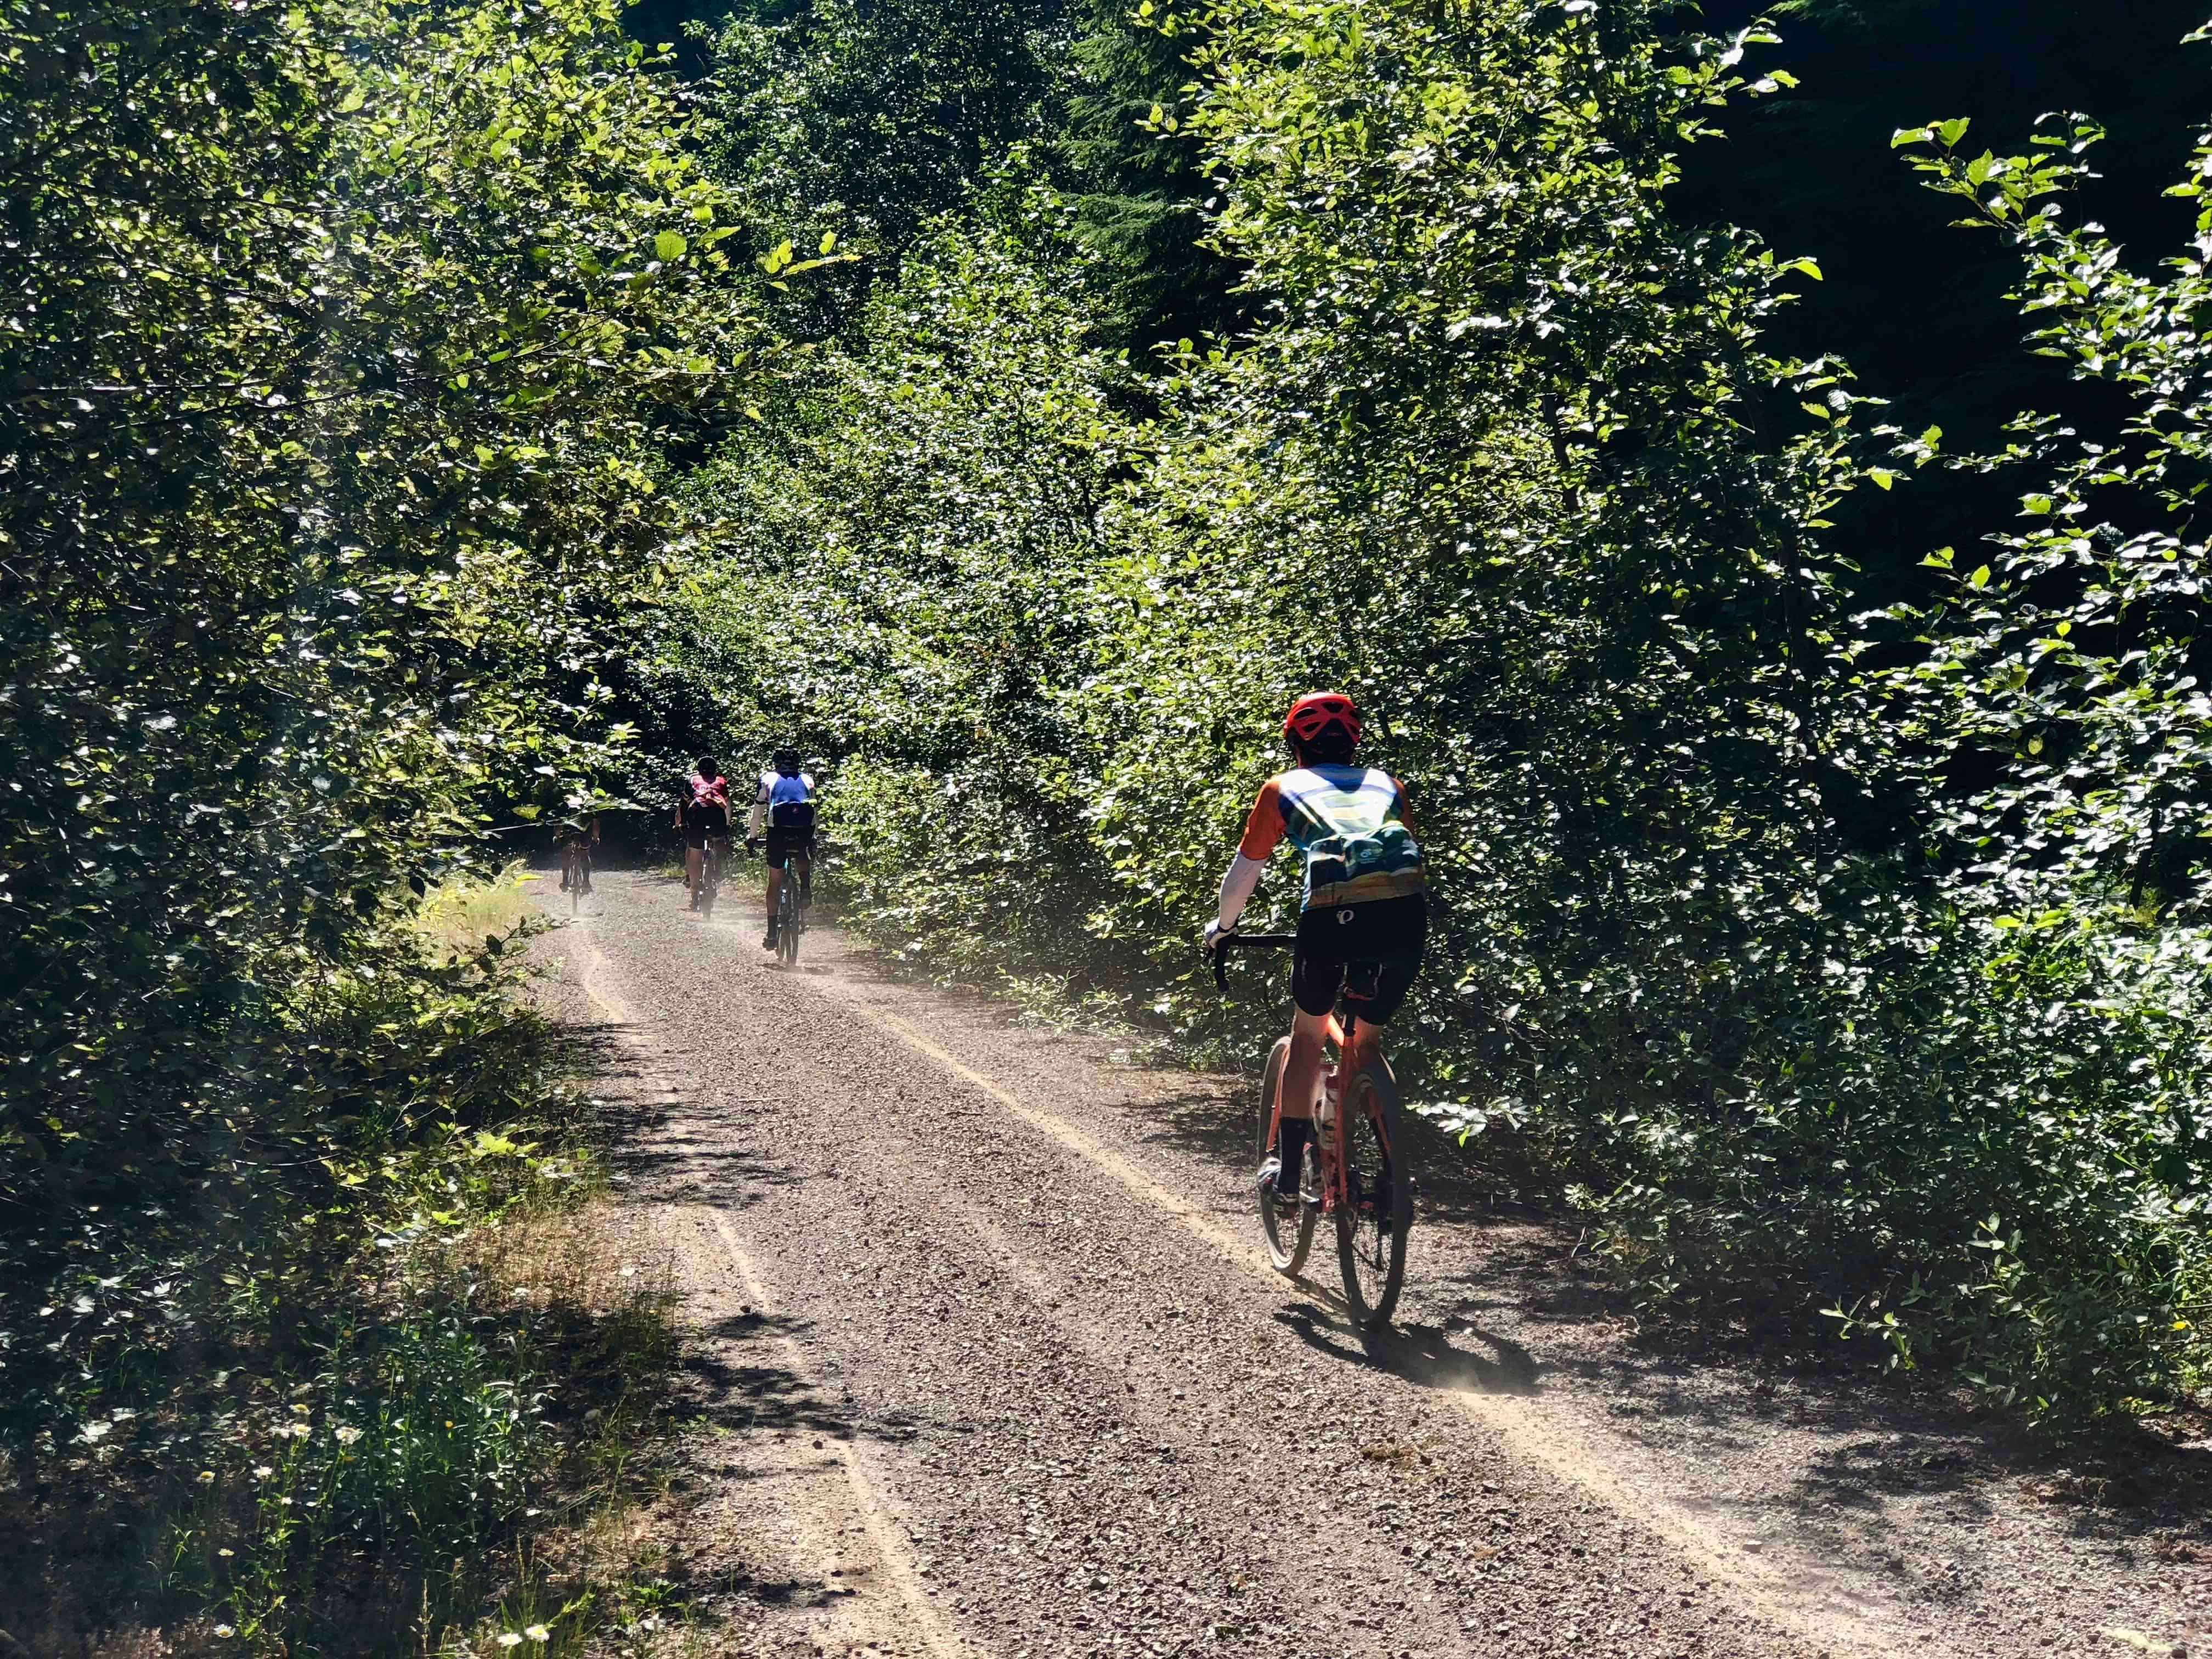 Two cyclists descending Forest Road 1012, Willamette National Forest